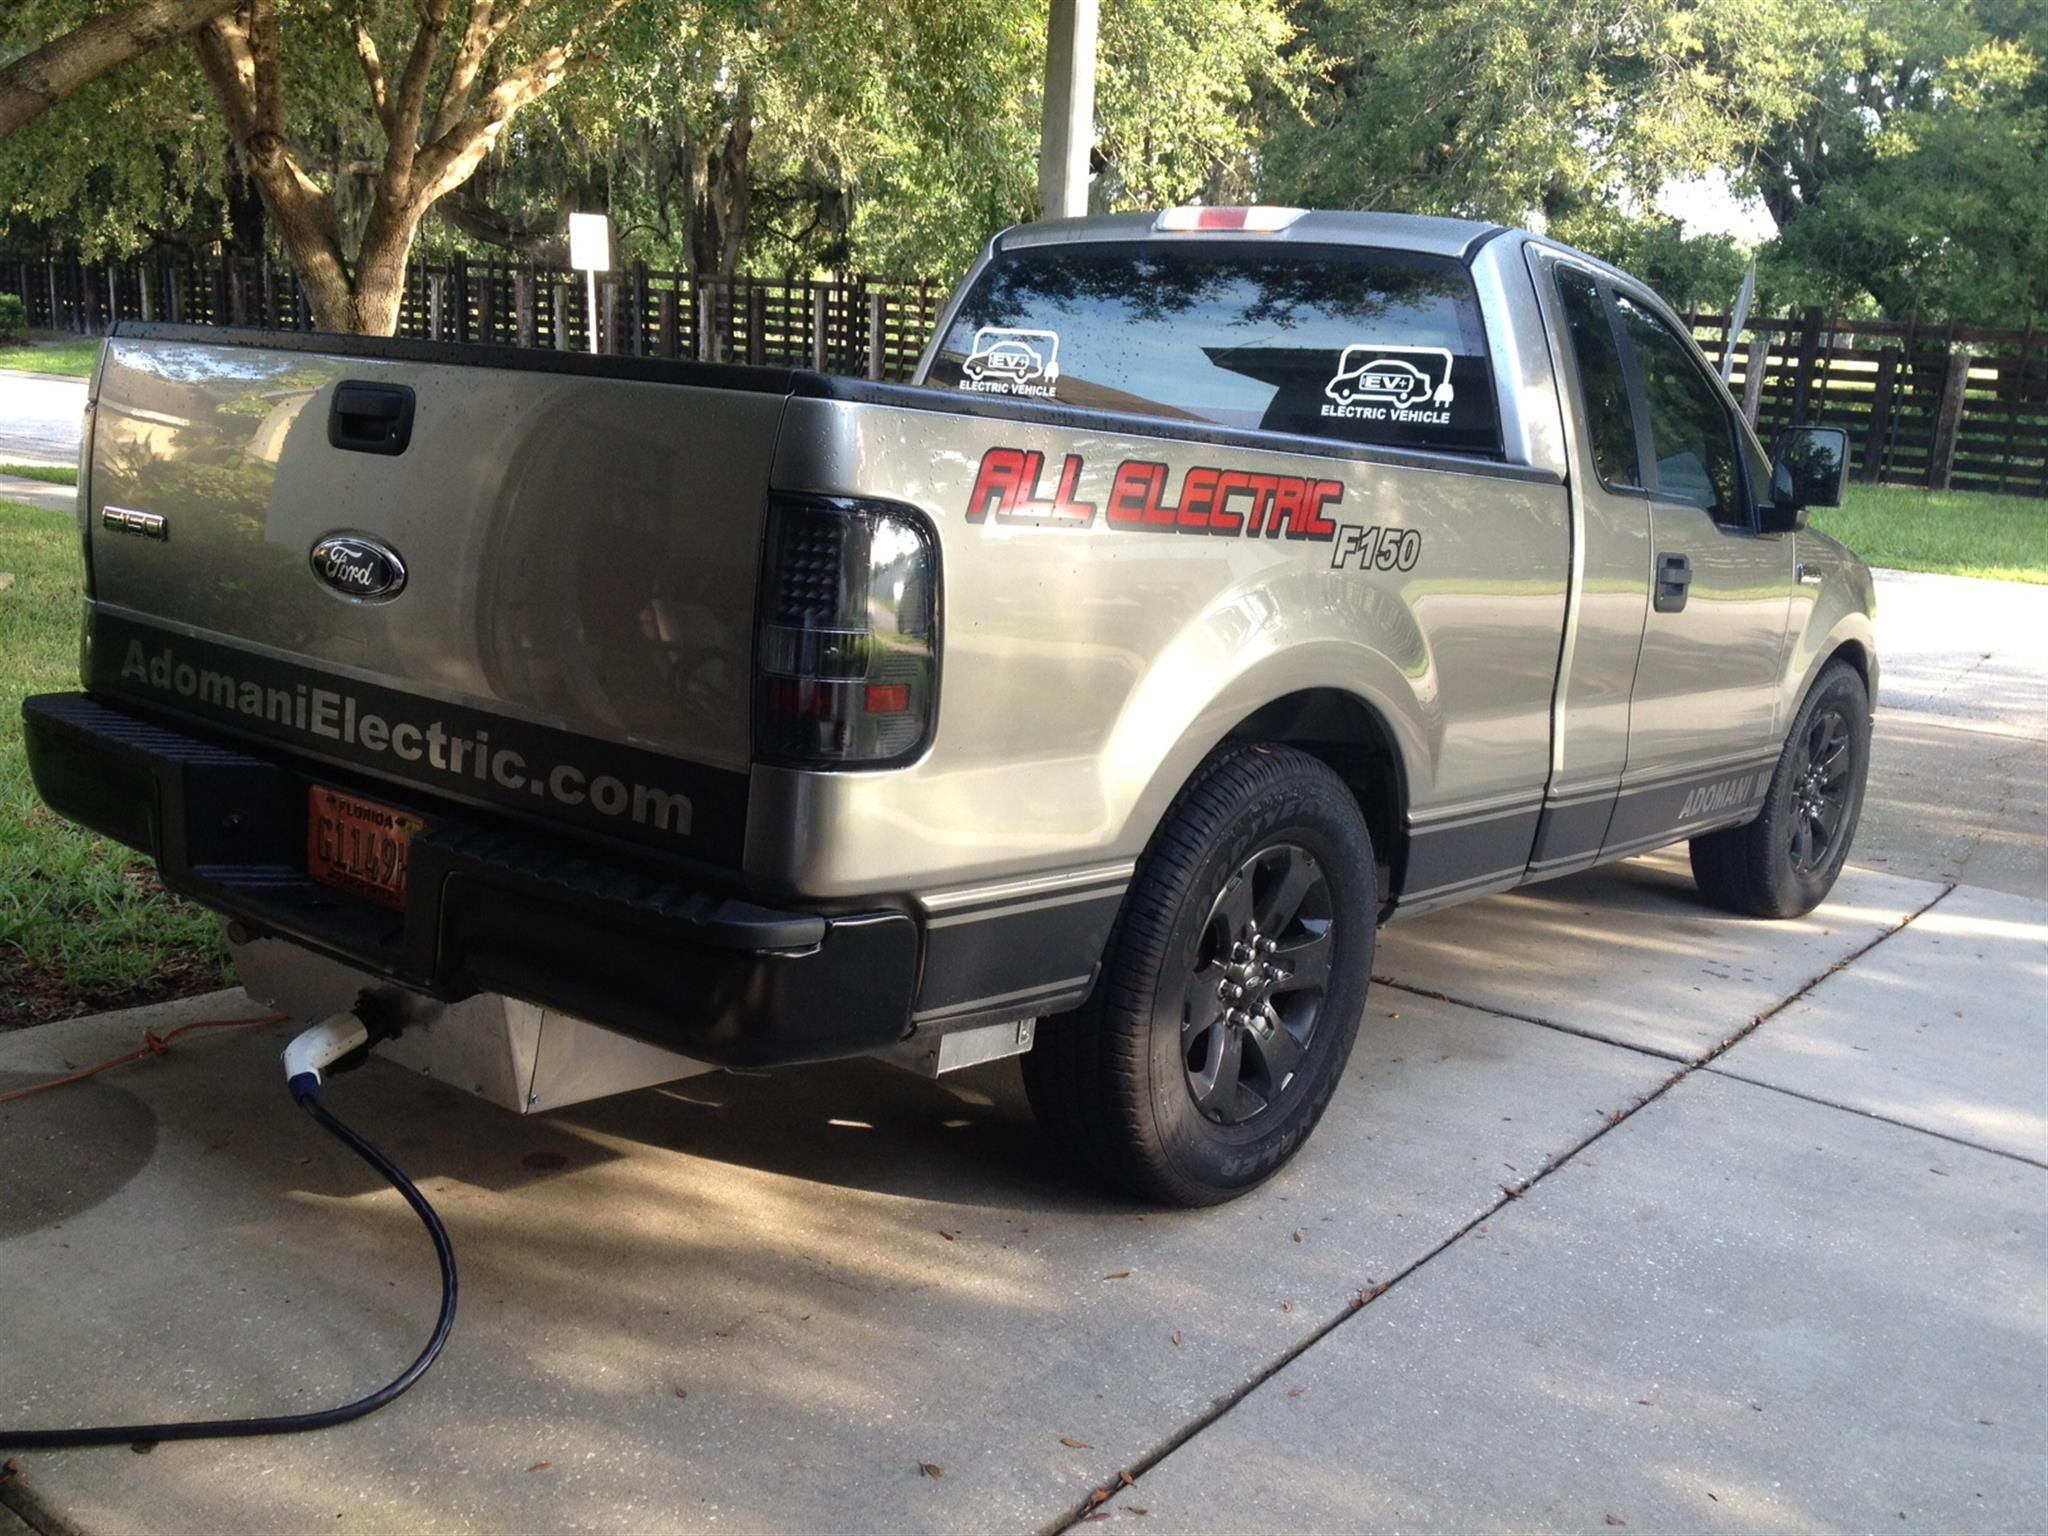 Ford F150 100 Electric Vehicle Conversion By Car Pledge In Other Click To View More Photood Info